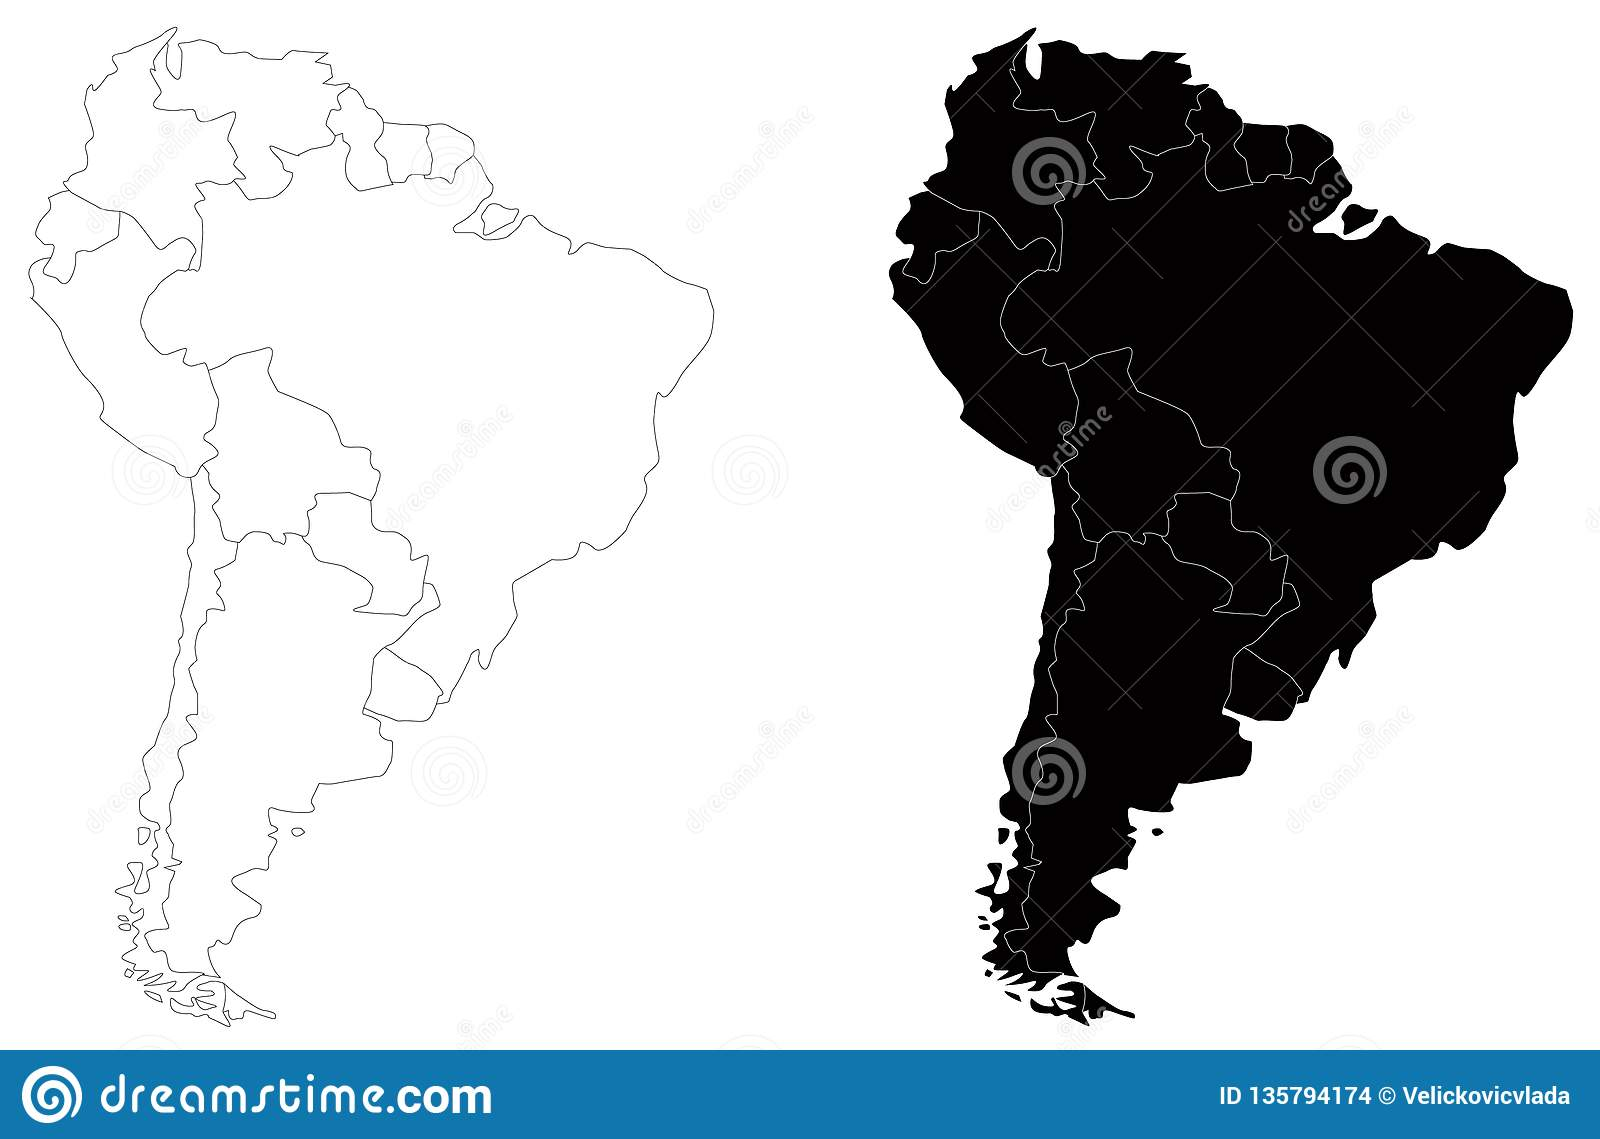 Latin America South America Map.South America Or Latin America Map Continent In The World Stock